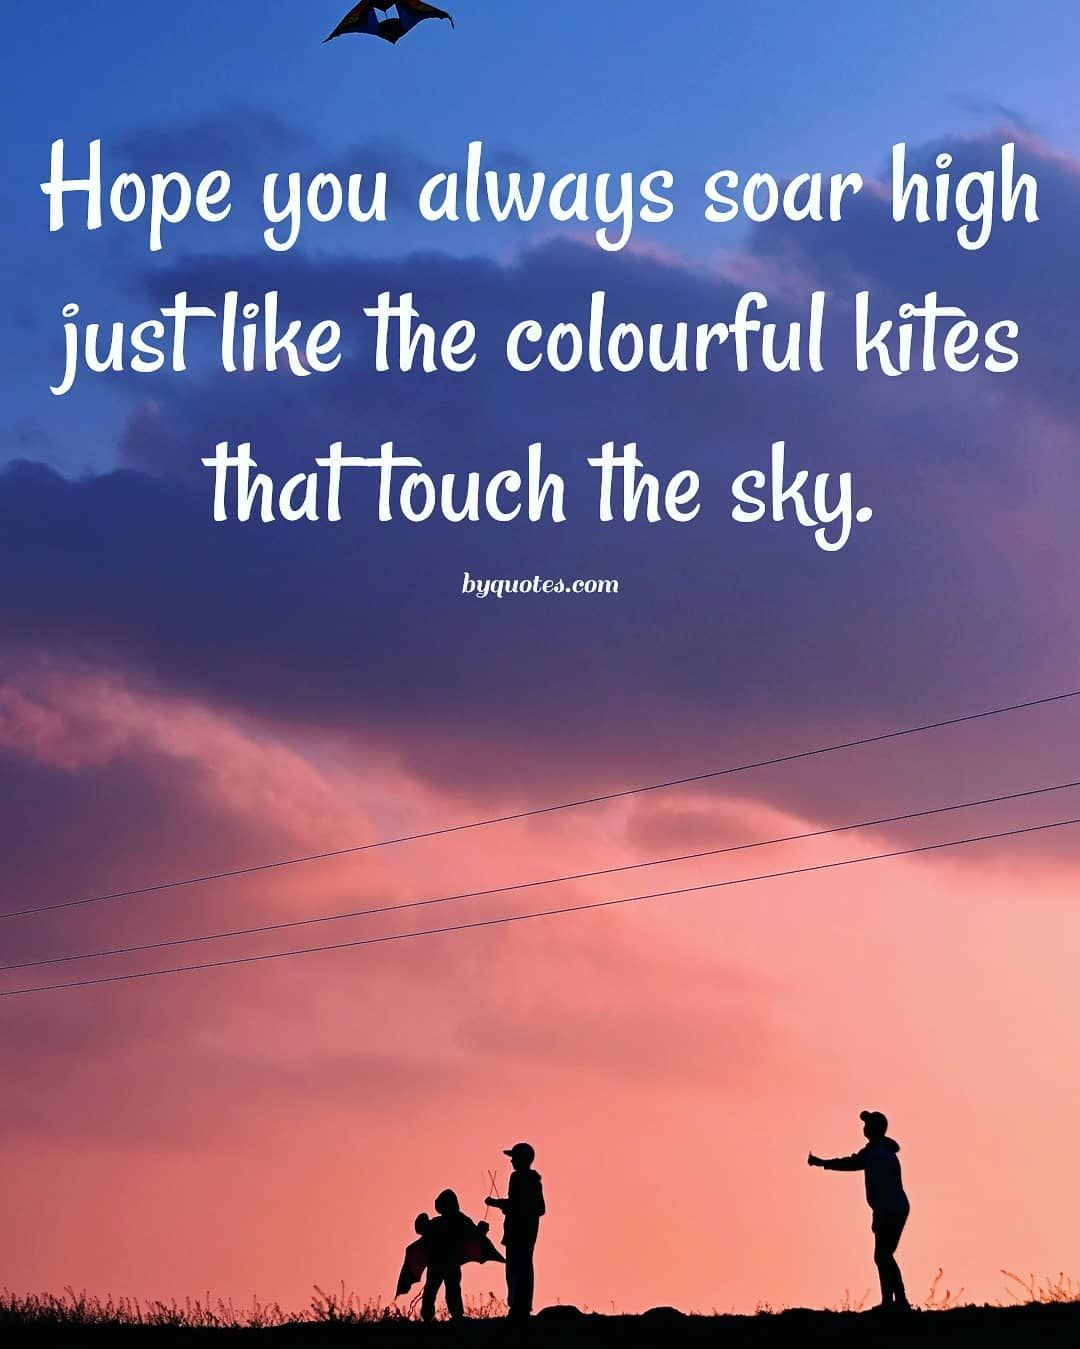 Soar High Touch The Sky Bymyquotes Successquotes Hardwork Englishquotes Mindset Ewordpower Personaldevelopment L Dream Quotes Change Quotes Life Quotes